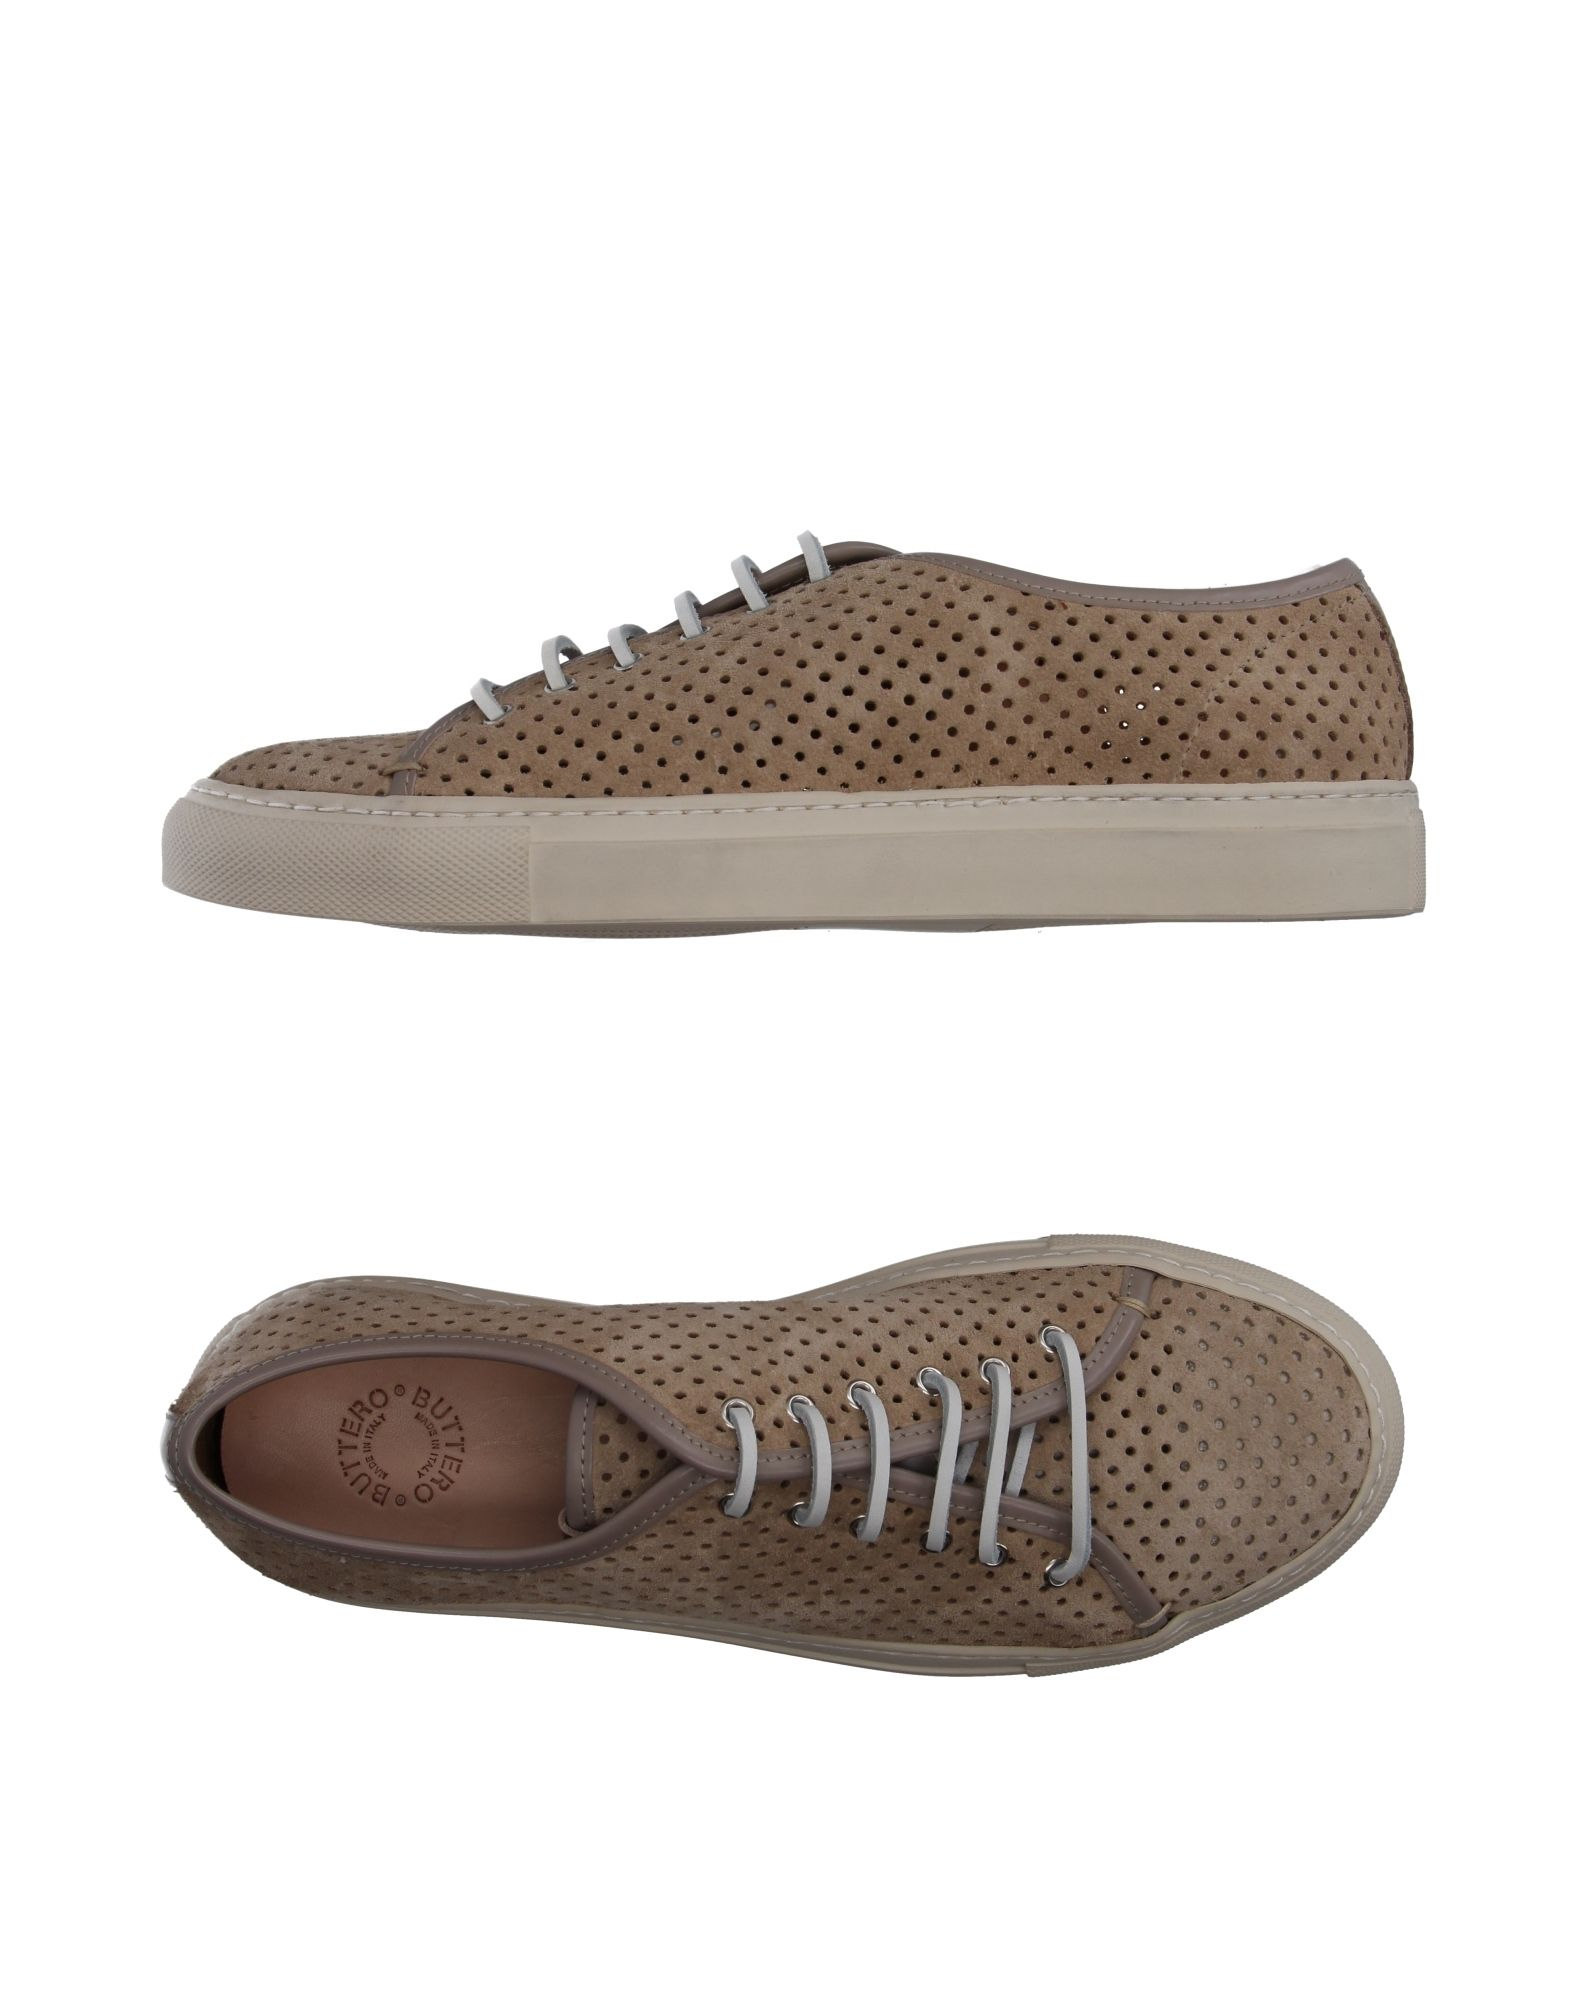 Buttero® Sneakers - Women Buttero® Sneakers Sneakers Sneakers online on  United Kingdom - 11165696JC 6d7f79